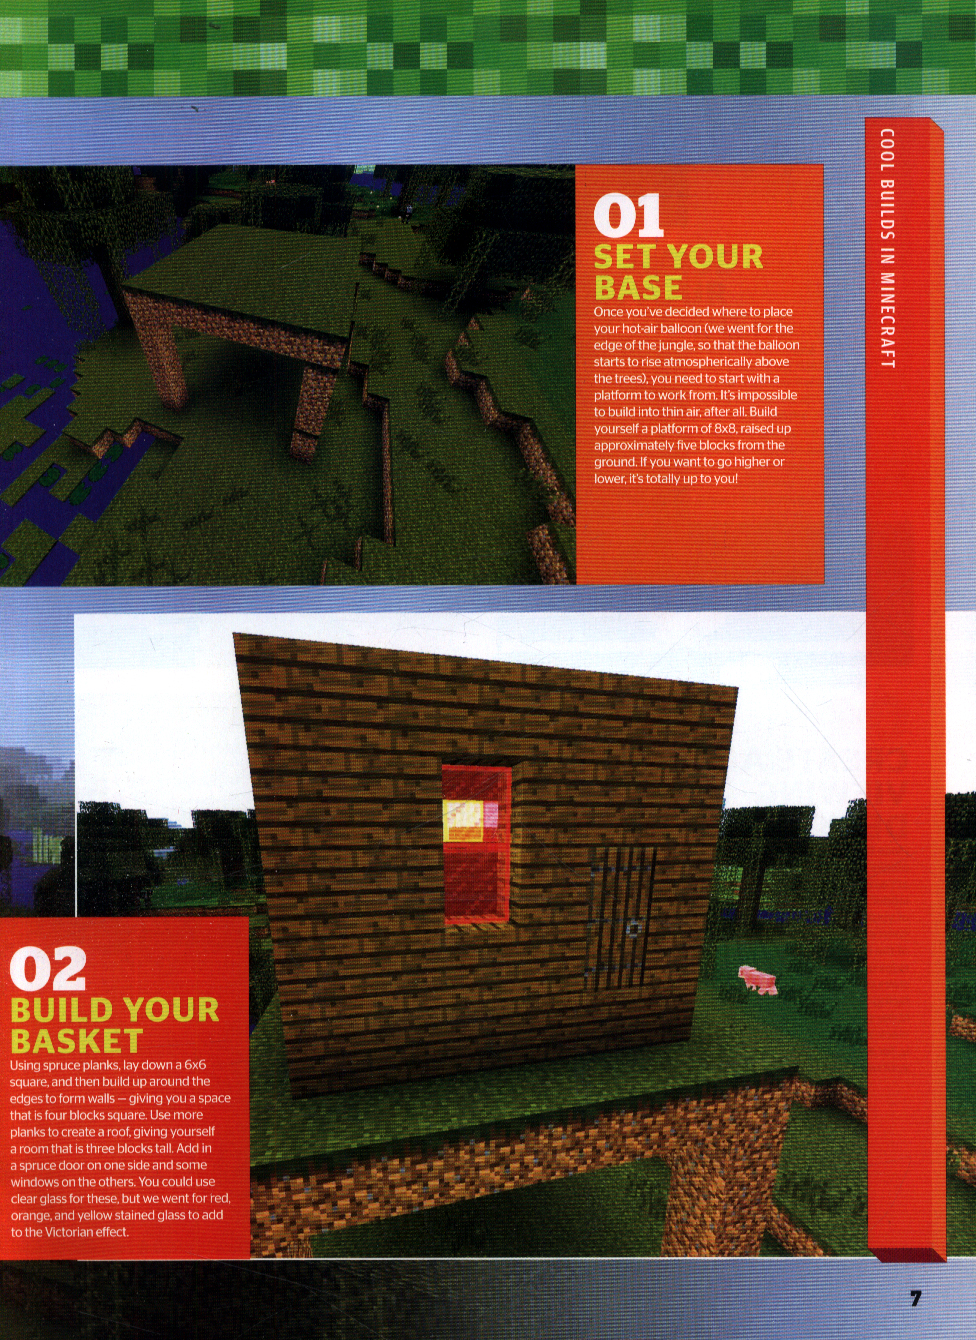 Cool builds in Minecraft by Publishing, Future